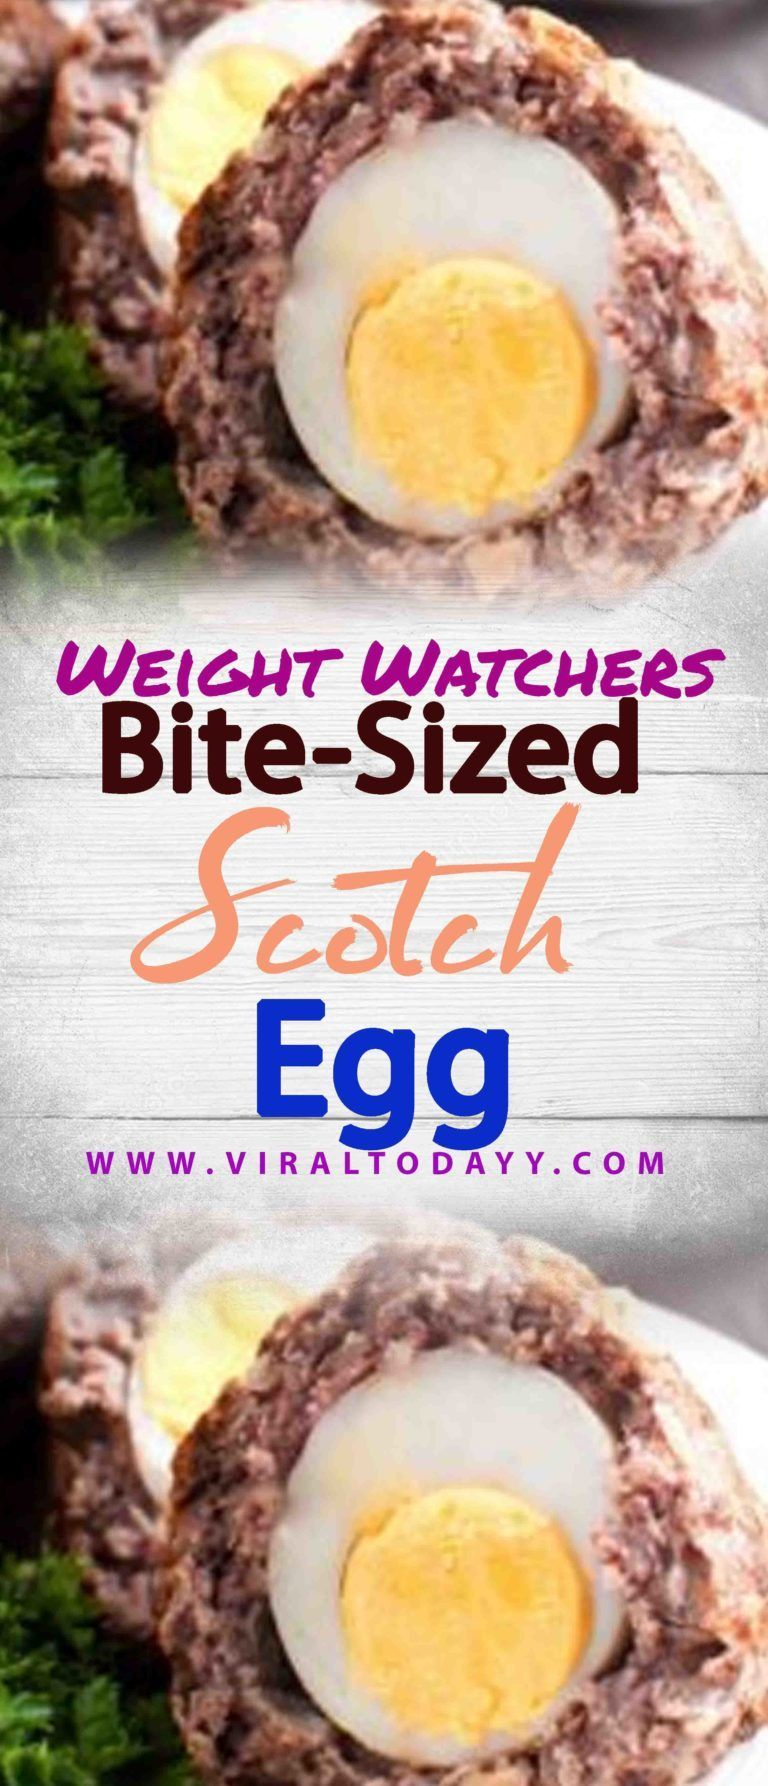 Bite-Sized Scotch Egg – Page 2 – All about Your Power Recipes #scotcheggs Bite-Sized Scotch Egg – Page 2 – All about Your Power Recipes #scotcheggs